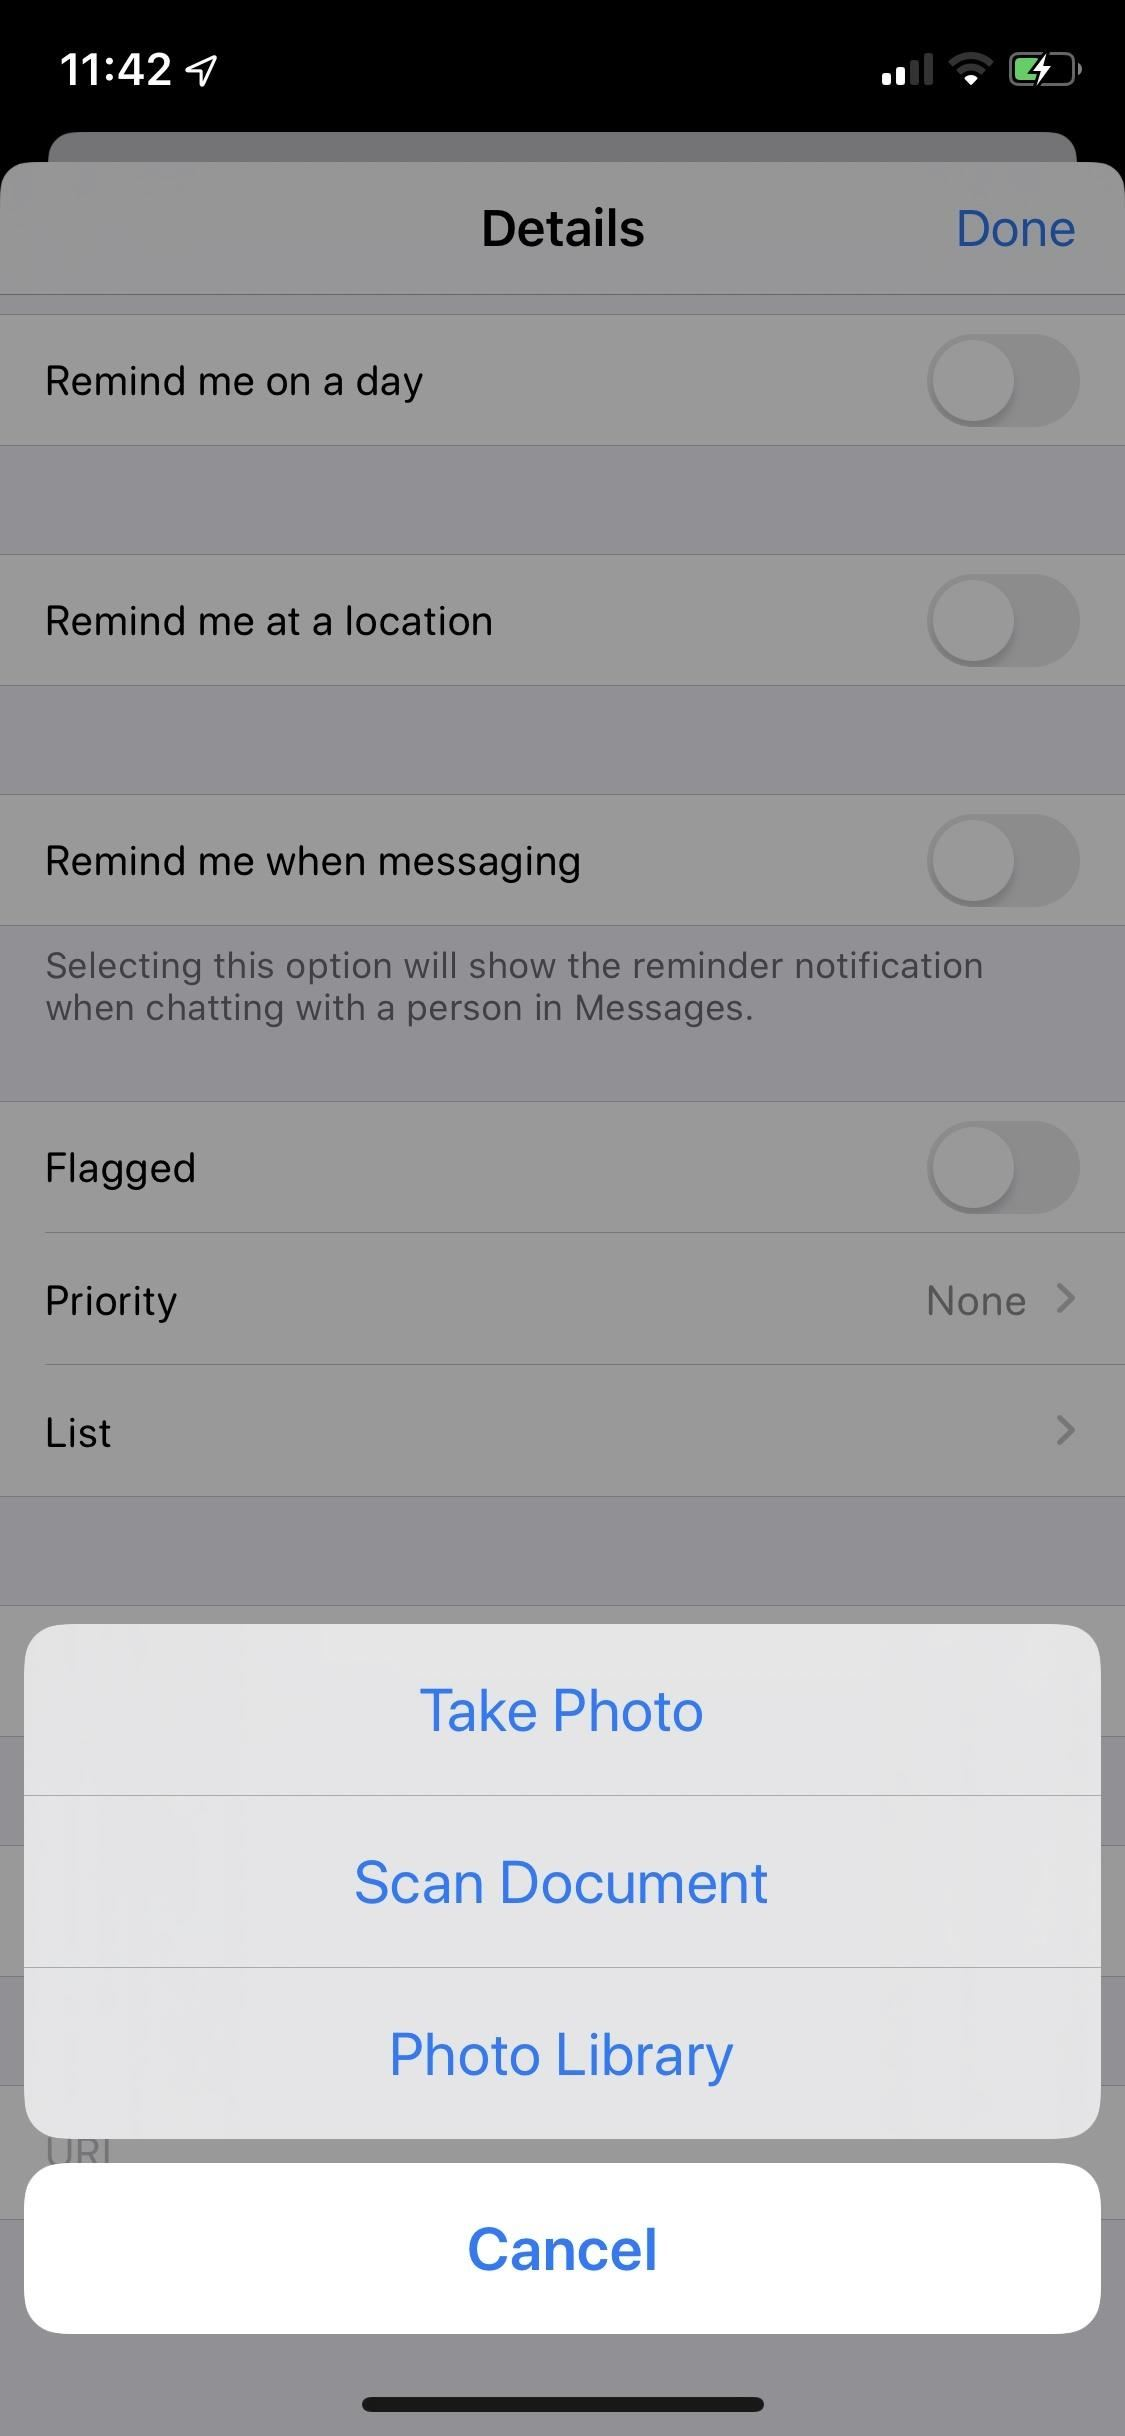 How to Attach Photos, Document Scans & Web Links to Reminders in iOS 13